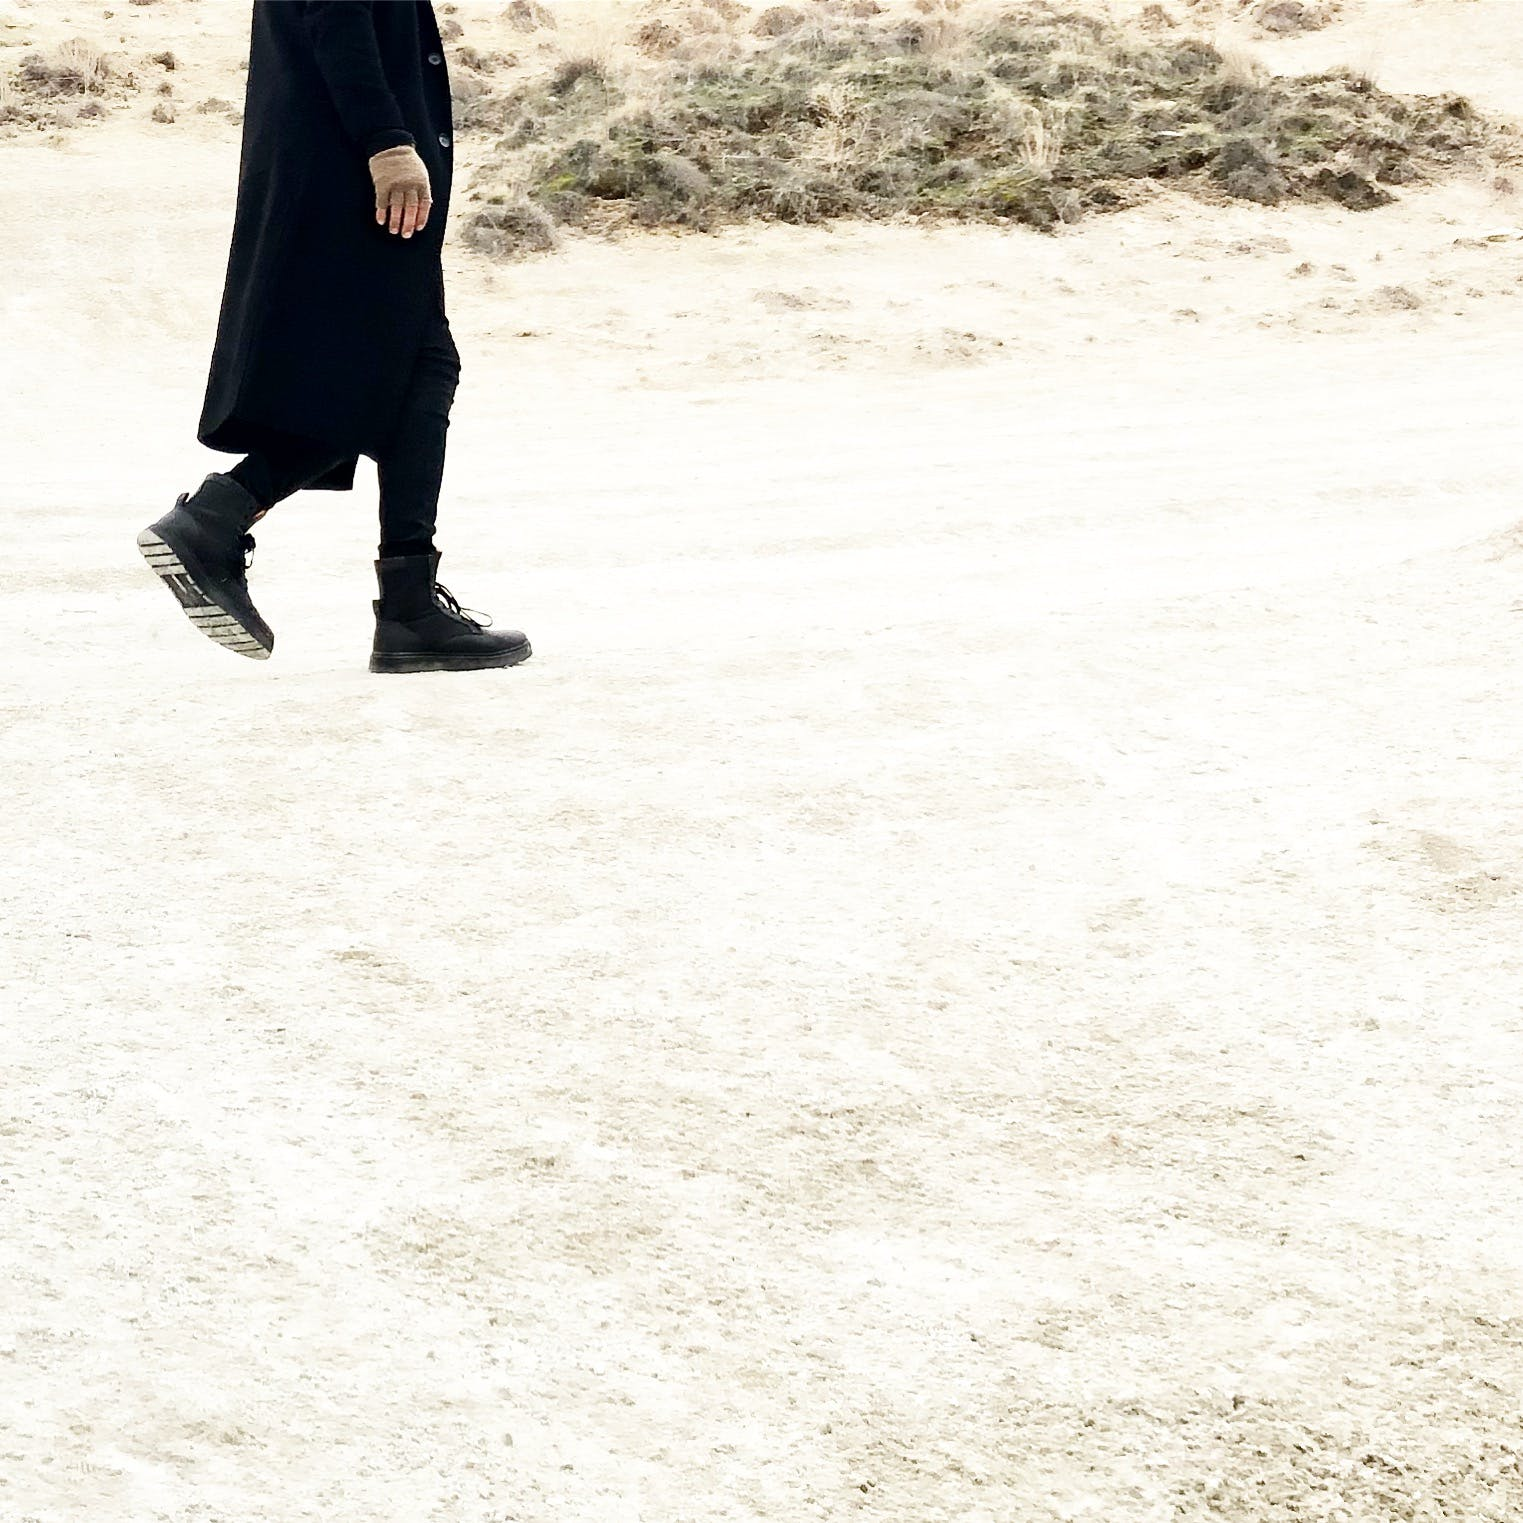 Person In Black Coat